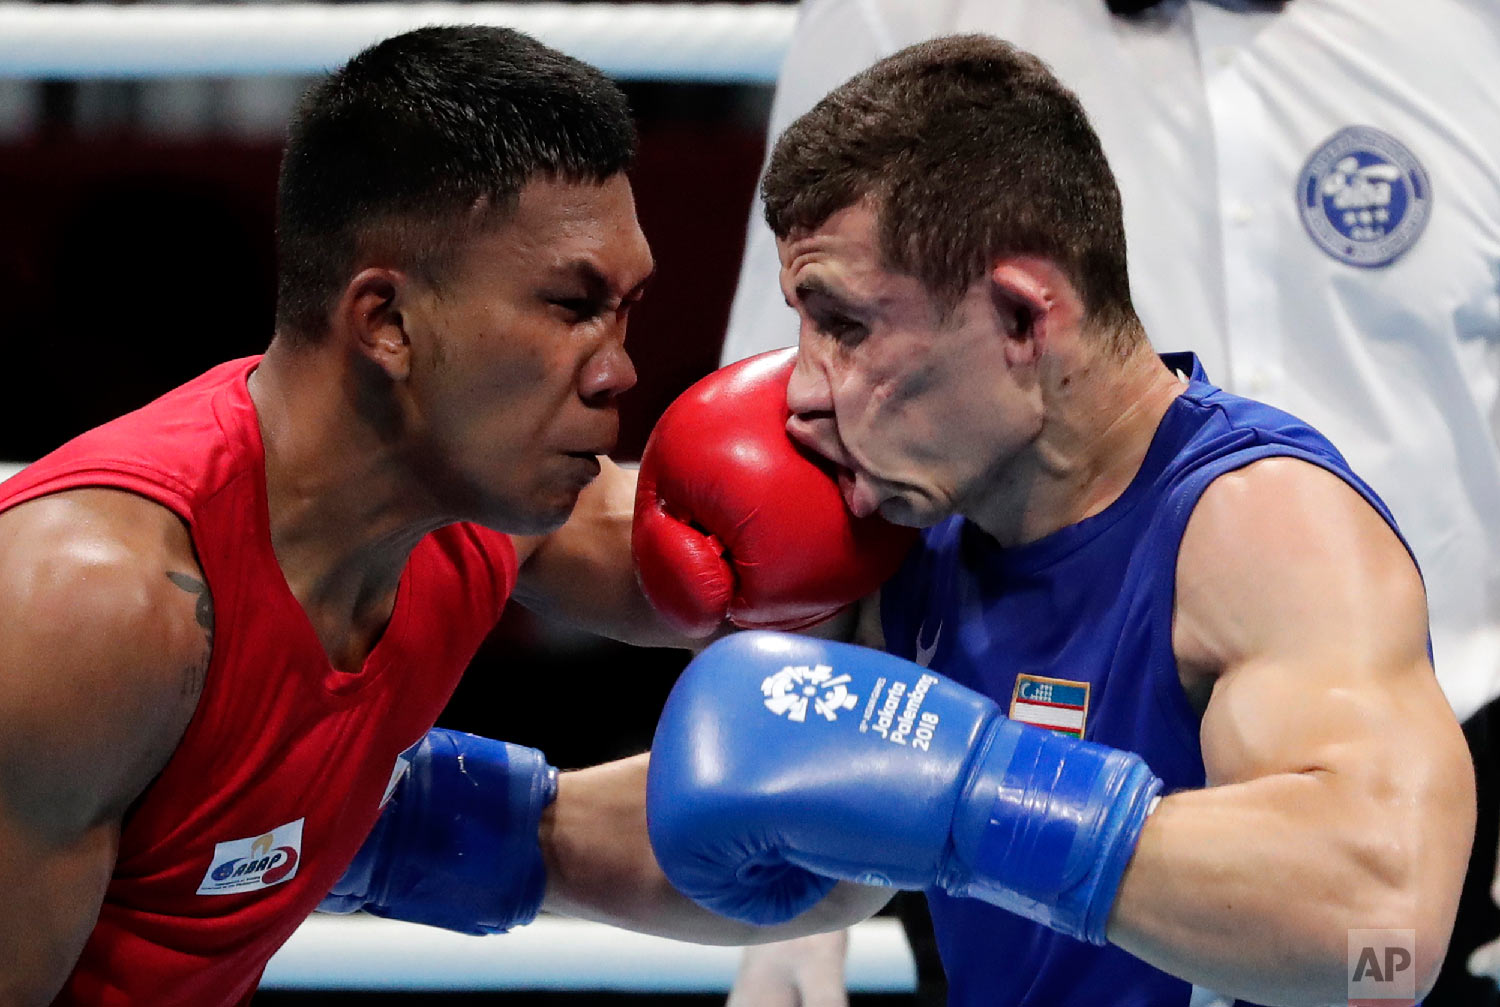 Phillippines' Eumir Felix Marcial, left, lands a blow on the face of Uzbekistan's Israil Madrimov during their men's middleweight boxing semifinal at the 18th Asian Games in Jakarta, Indonesia, on Aug. 31, 2018. (AP Photo/Lee Jin-man)